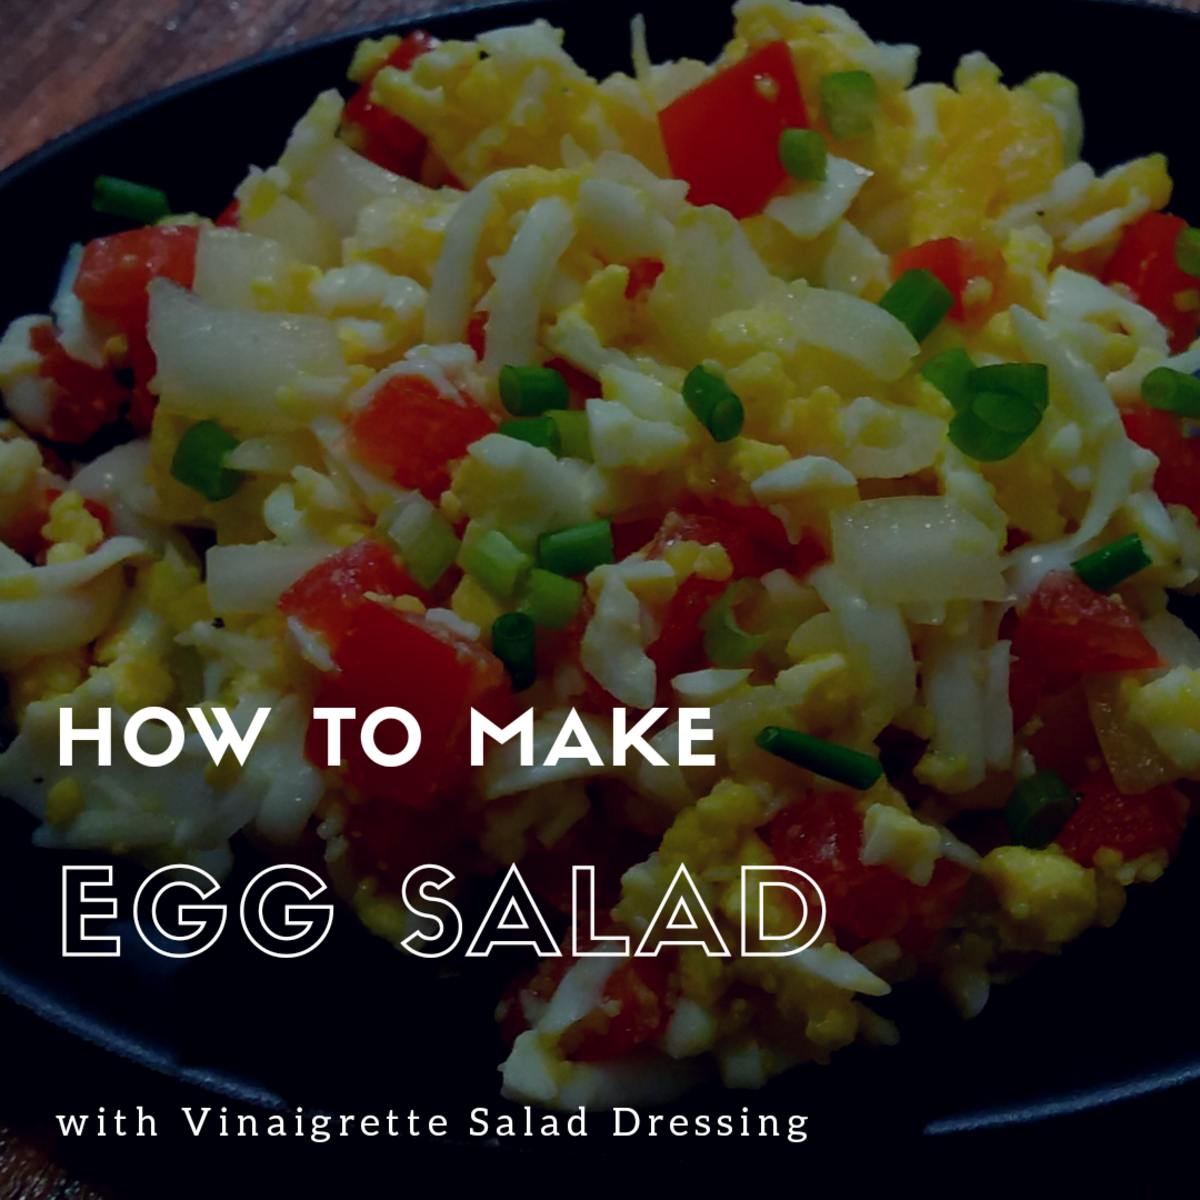 how to make egg salad with vinaigrette salad dressing (no mayonnaise)